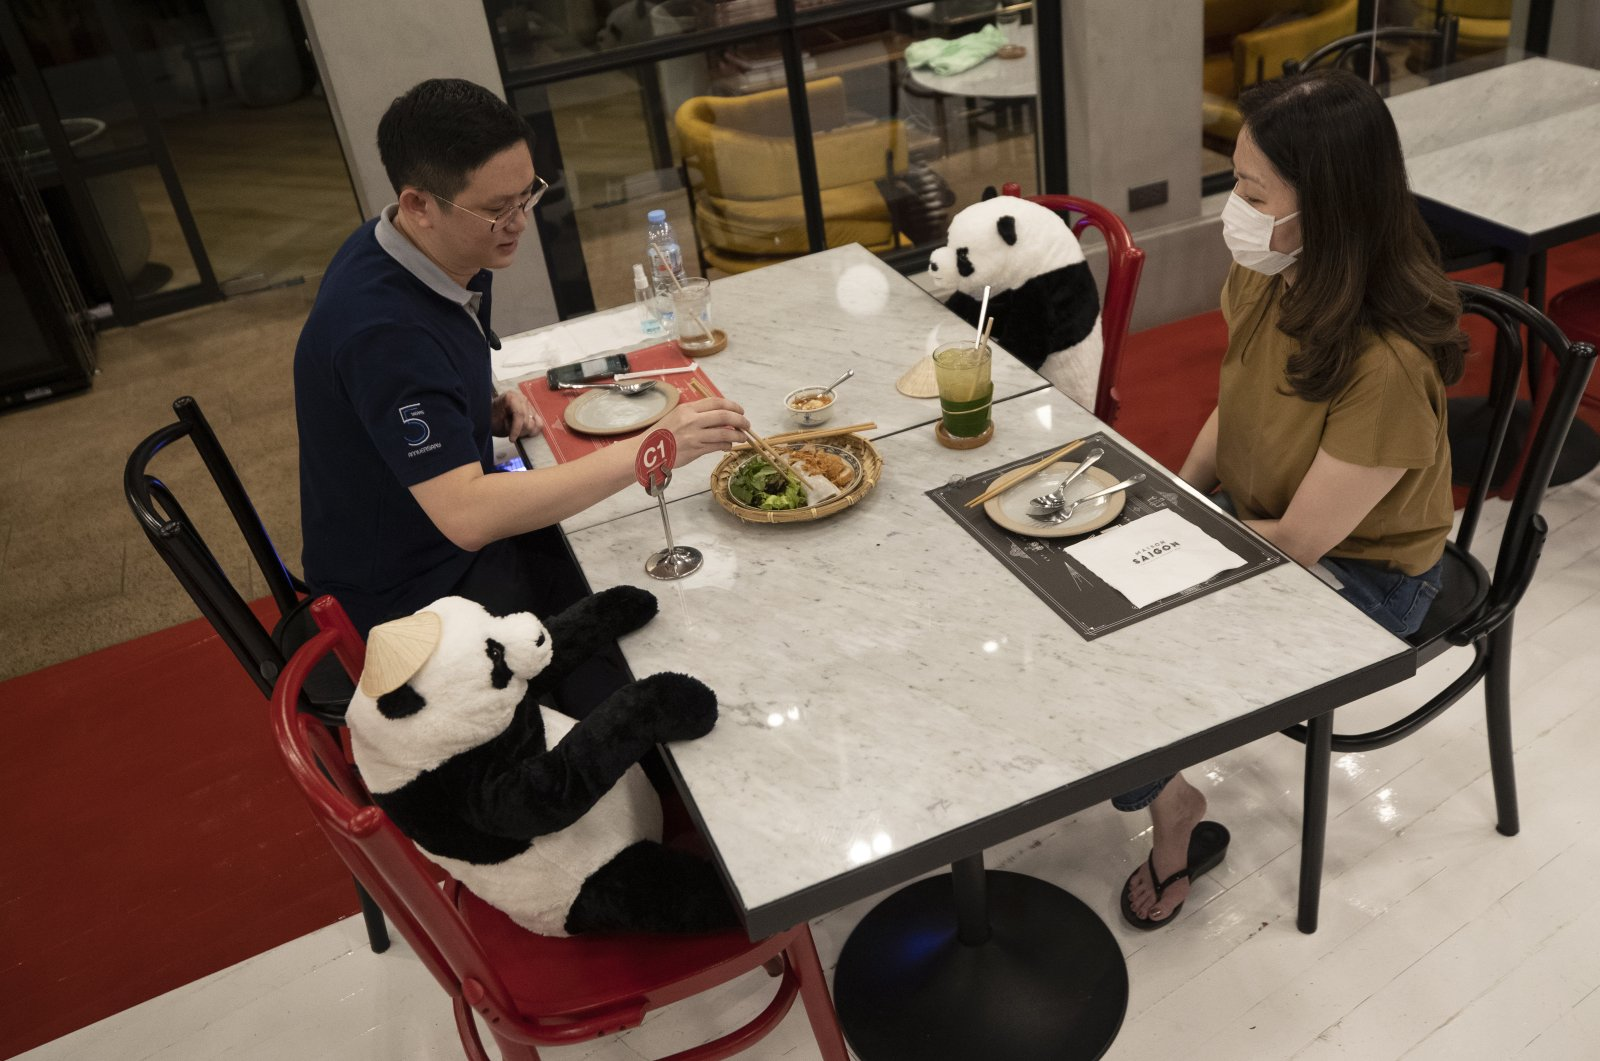 Customers of the Maison Saigon restaurant sit next to stuffed panda dolls the restaurant uses as space keepers for social distancing to help curb the spread of the coronavirus in Bangkok, Thailand, May 5, 2020. (AP Photo)